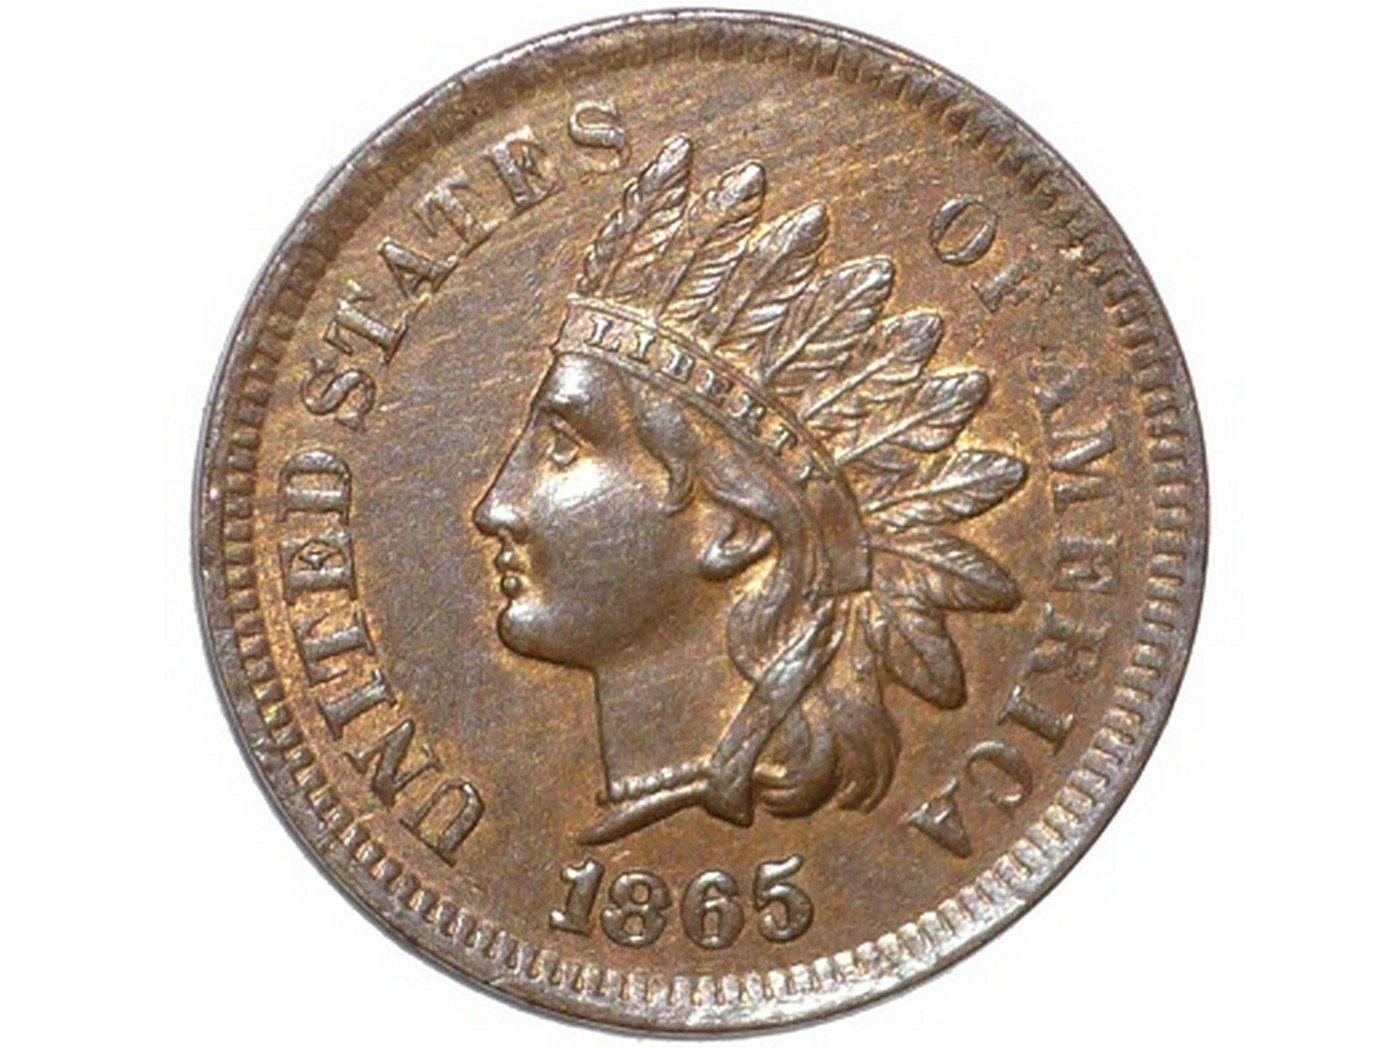 1865 Plain 5 RPD-011 - Indian Head Penny - Photo by David Poliquin